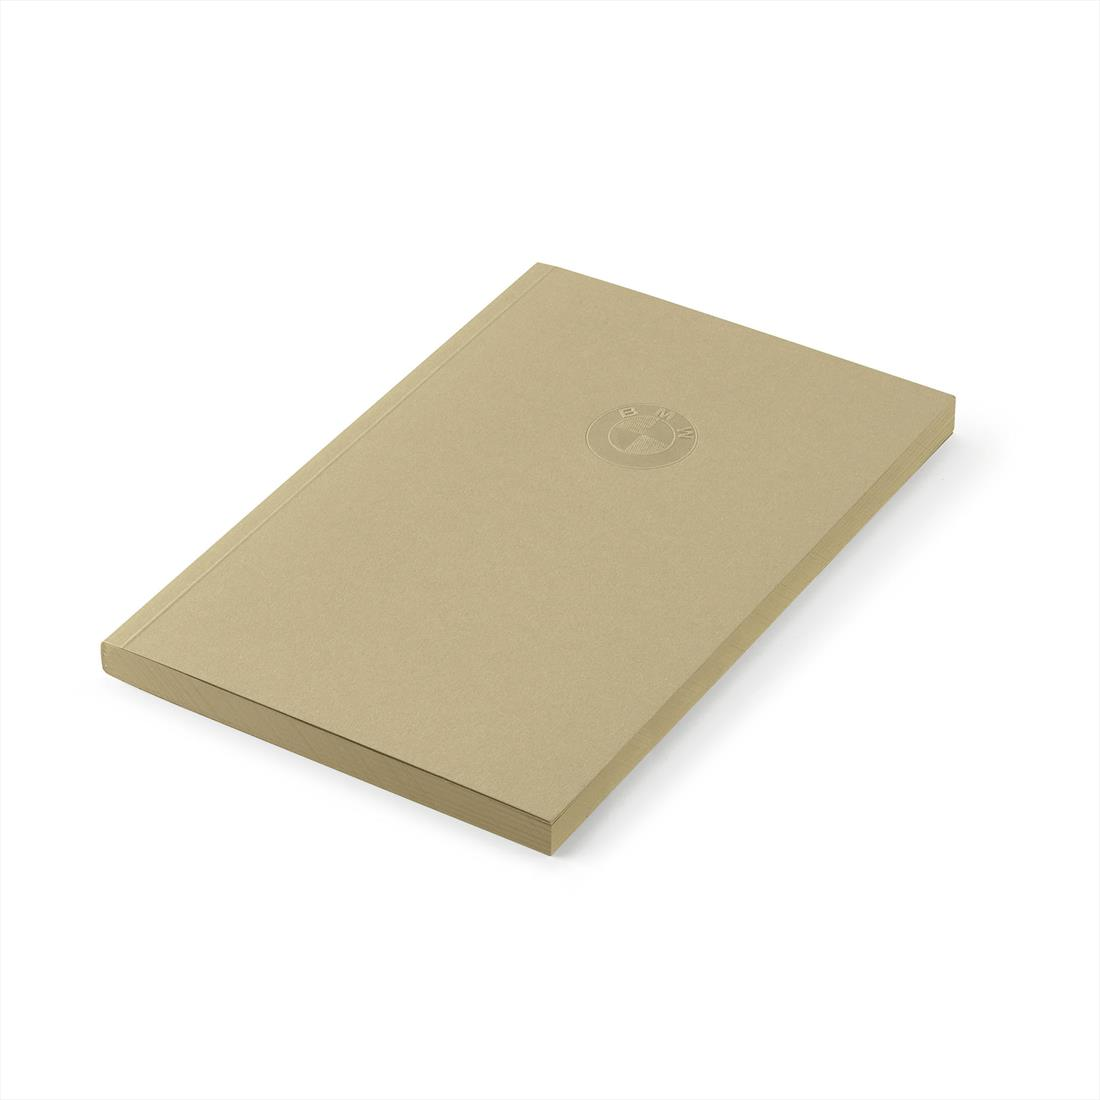 BMW NOTEBOOK, LARGE